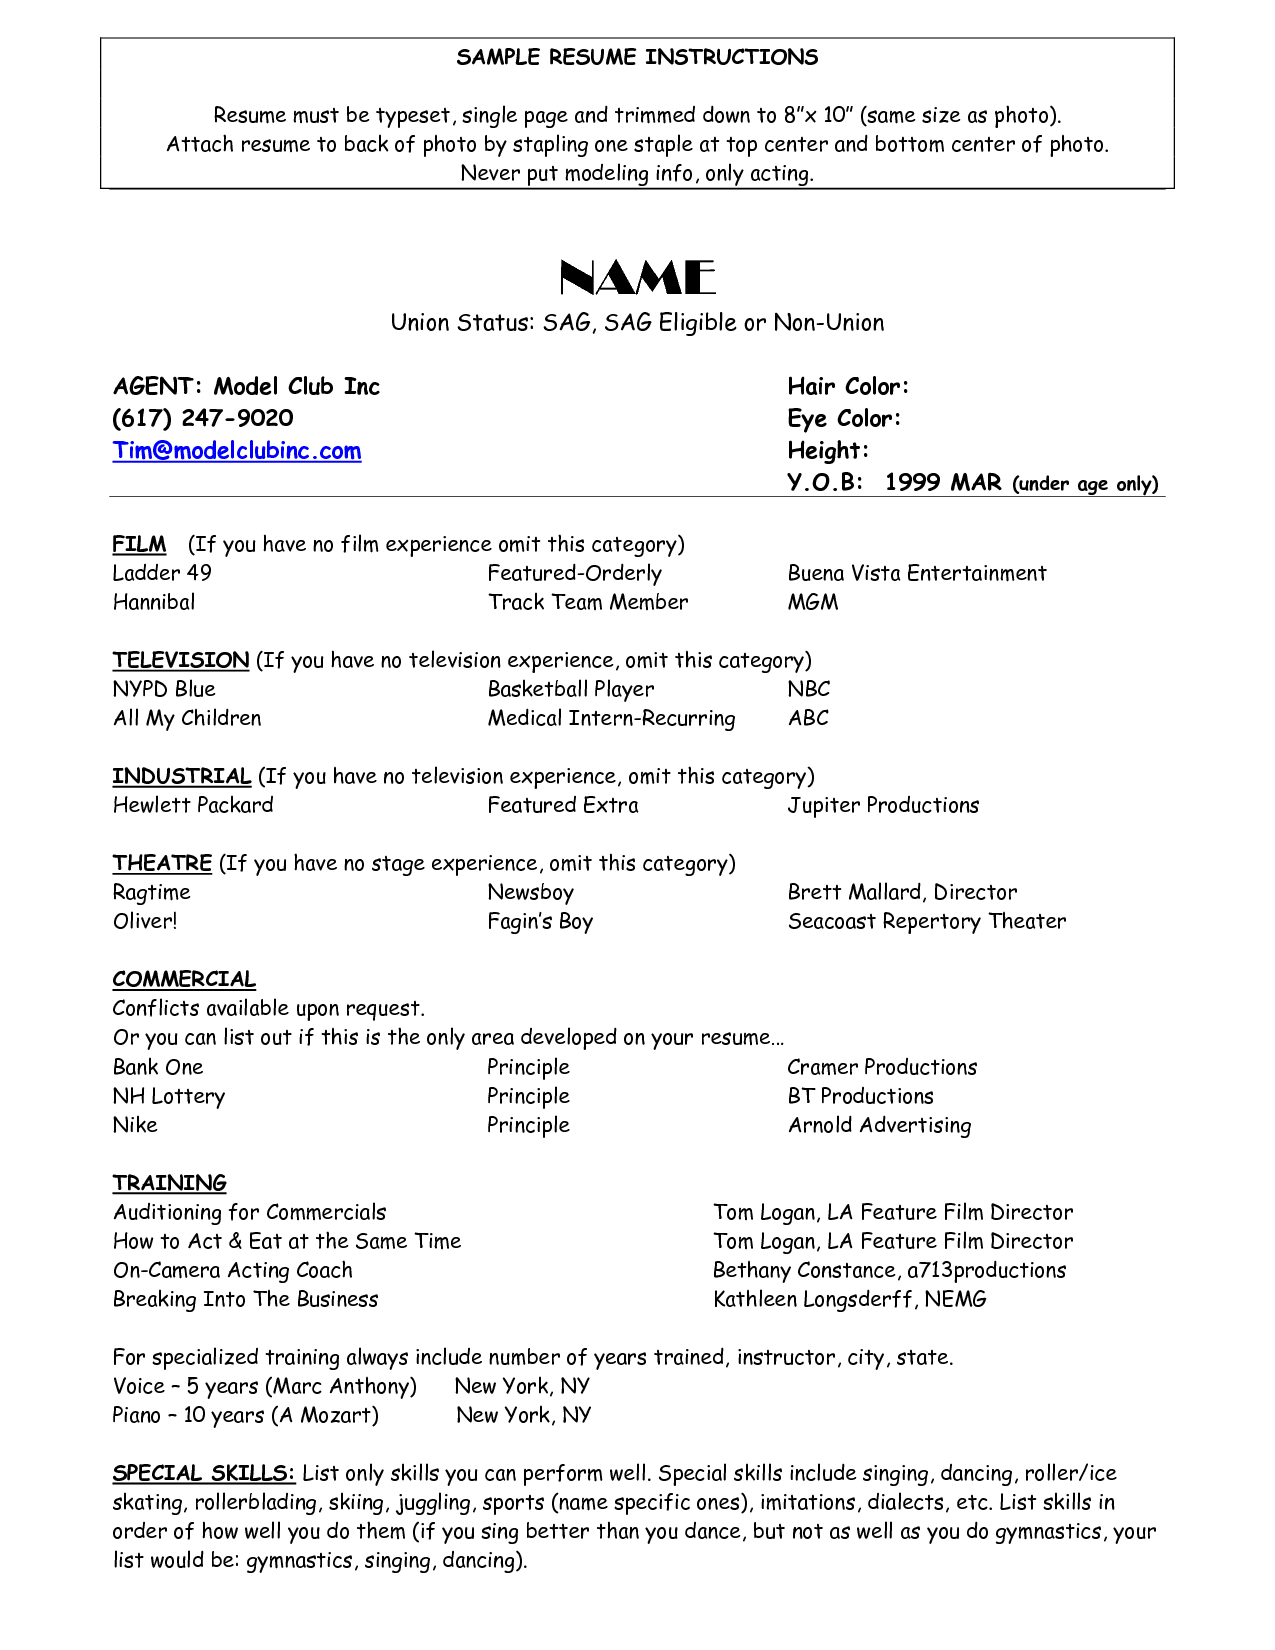 resume for child actor scope of work template